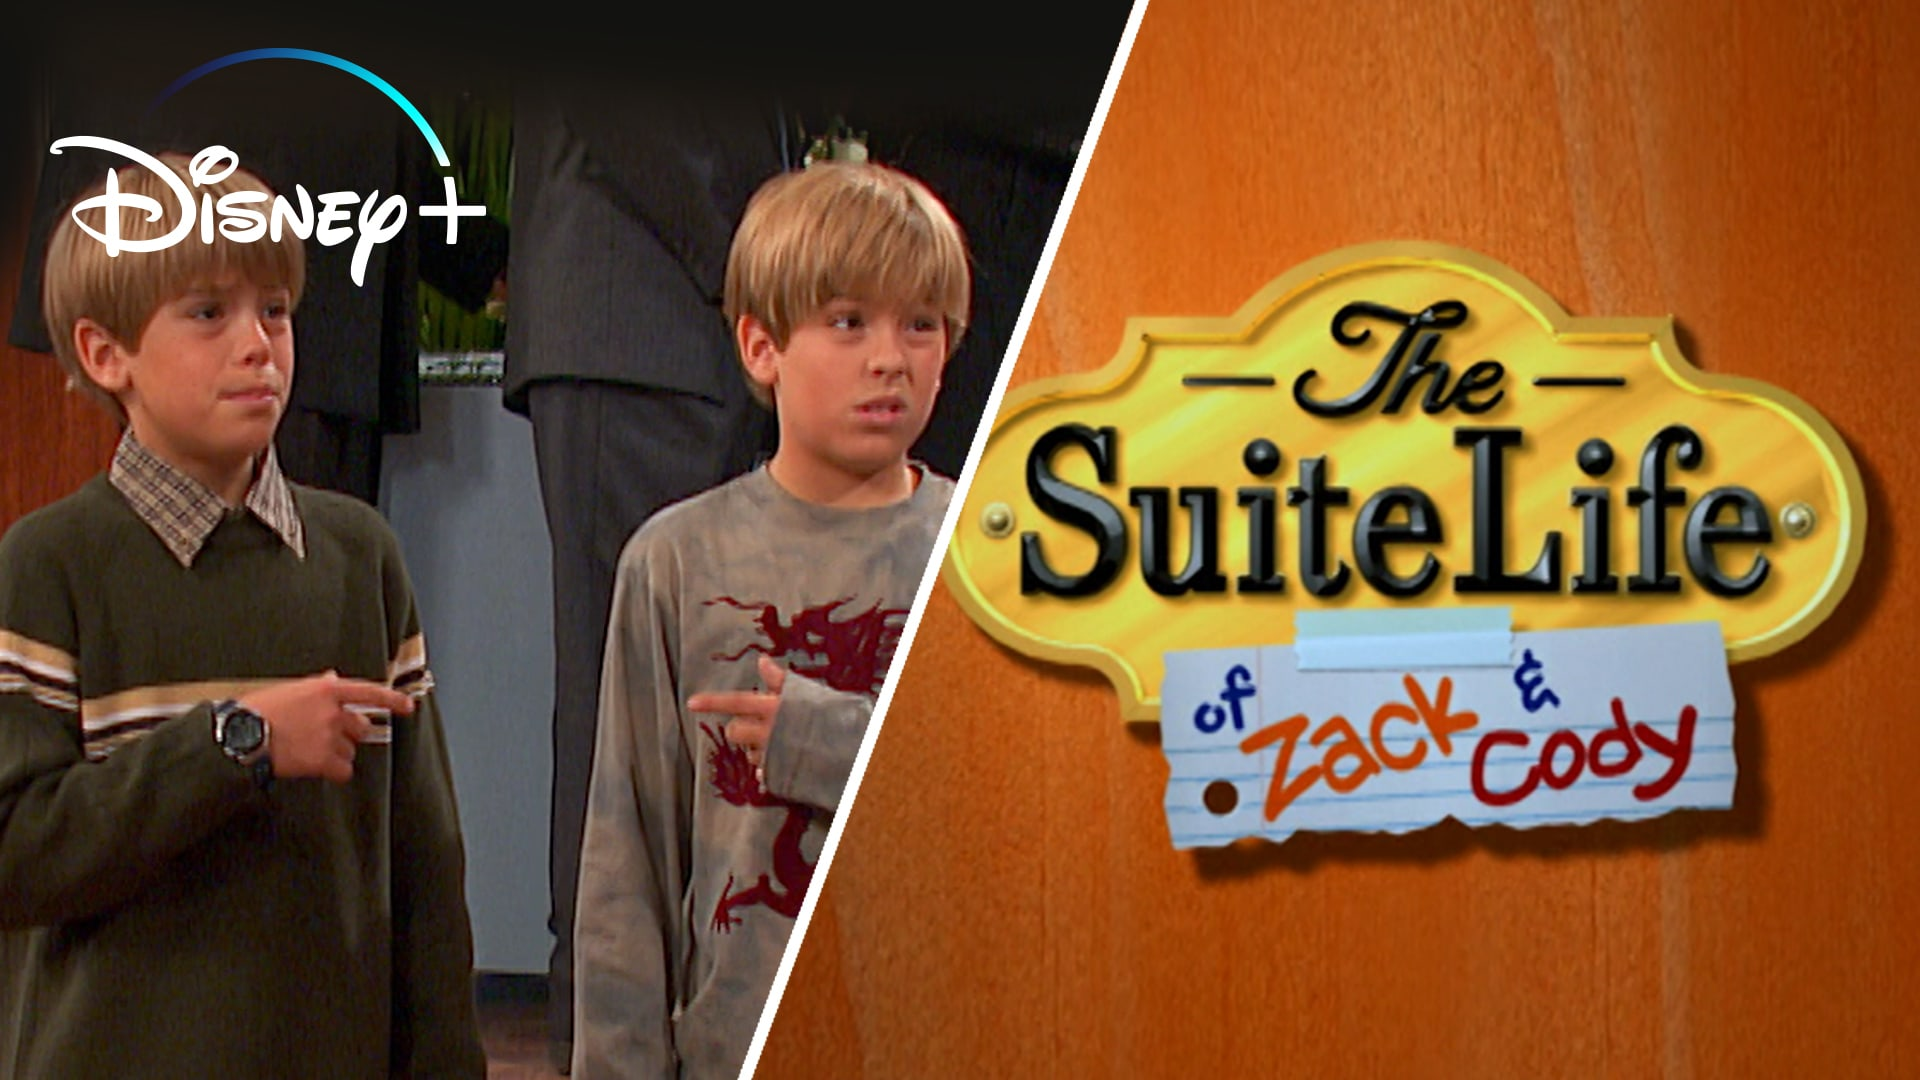 Suite Life of Zack and Cody - Theme Song | Disney+ Throwbacks | Disney+